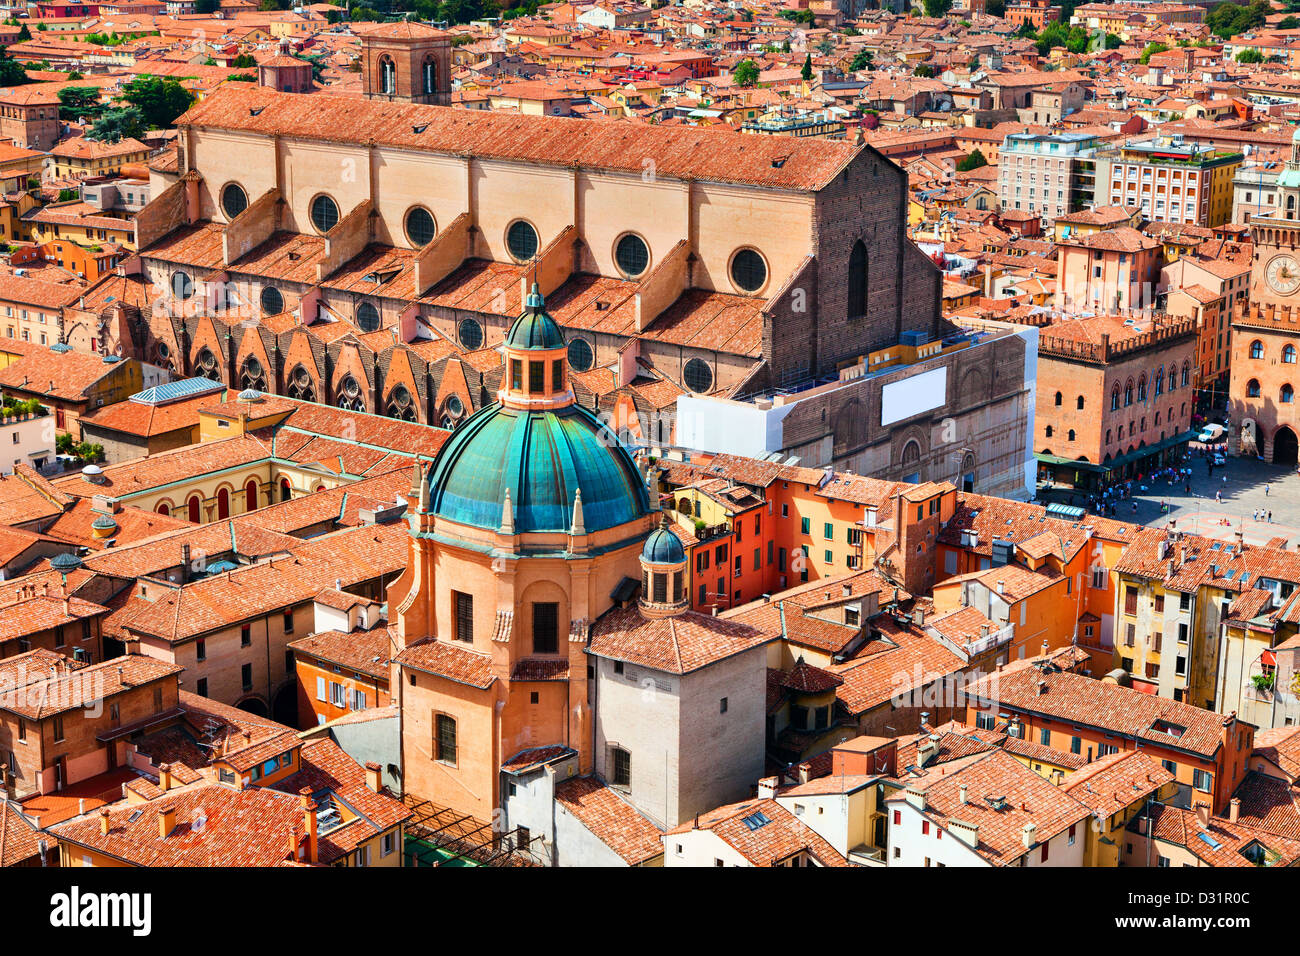 Aerial view of Piazza Maggiore and Basilica San Petrino from top of Asinelli tower, Bologna, Italy - Stock Image